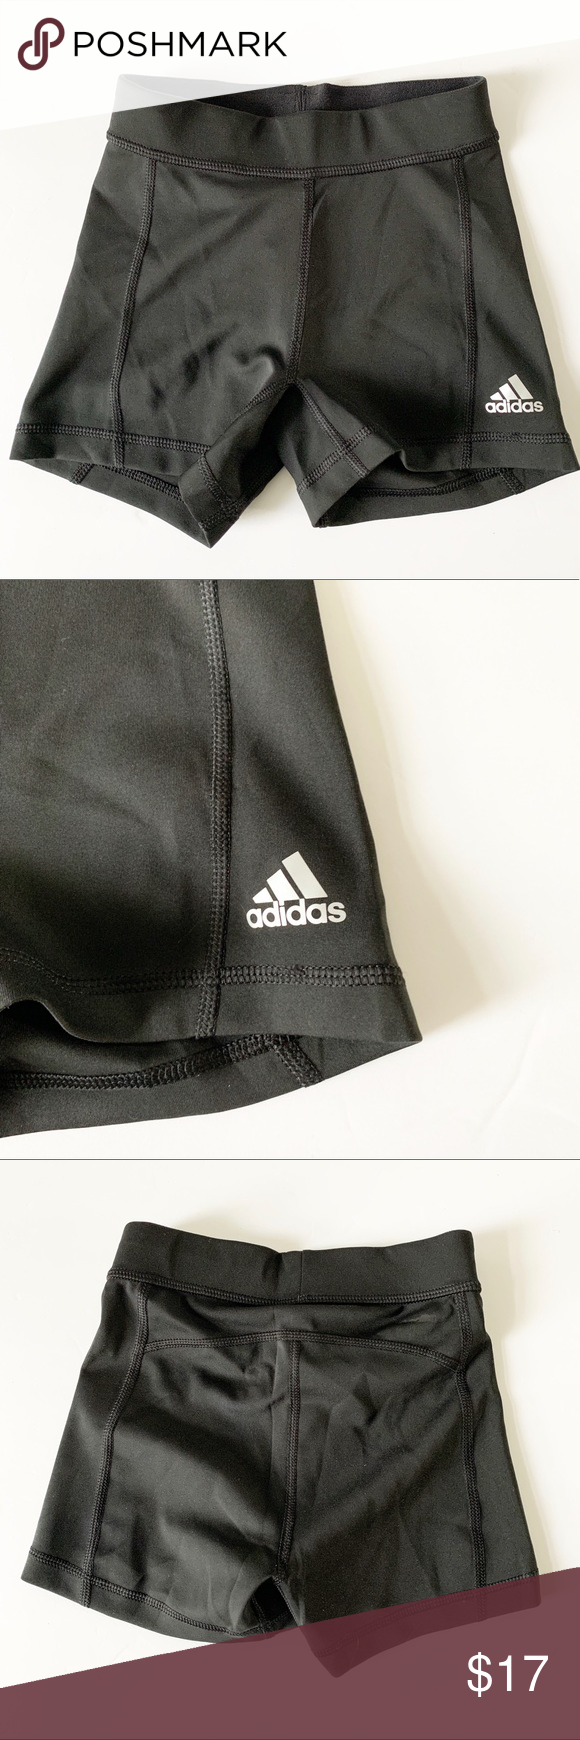 """NWT Adidas Tech Fit Compression Booty Shorts XXS New adidas compression tech fit athletic booty shorts in black.  UPF, moisture wicking.  Women's size XXS.  Approximate measurements (flat lay): Waist 10"""" Inseam 3""""  Sorry, no returns for measurements.  This item is new with tags, bagged, and stored in a smoke and pet free location.   DXJ I0831.3 adidas Shorts"""